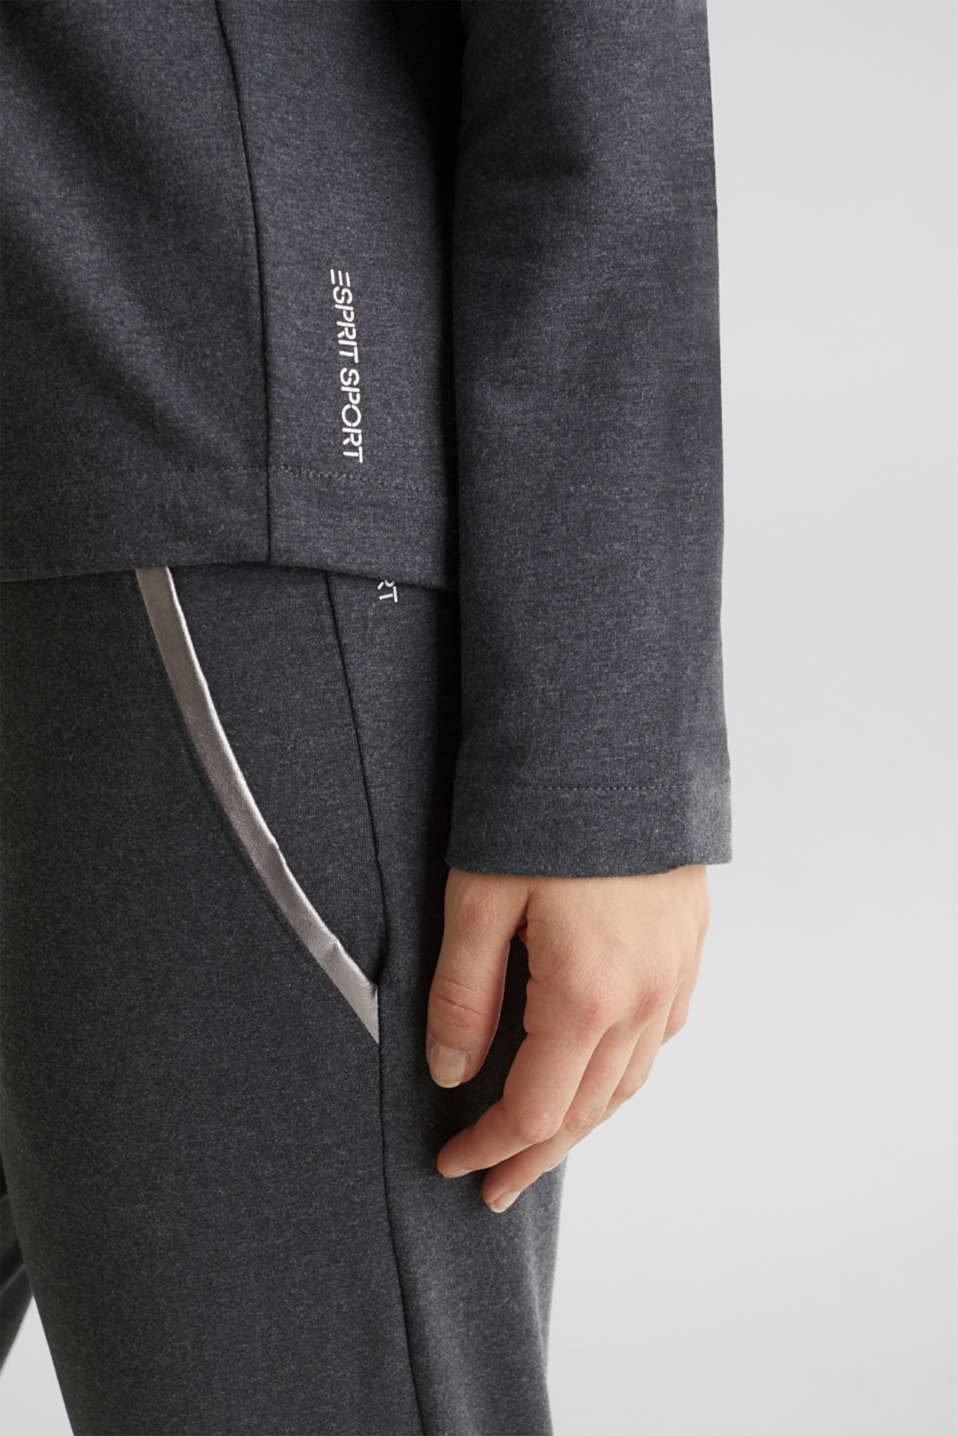 Lightweight sweatshirt with stripes and drawstring ties, ANTHRACITE 2, detail image number 5